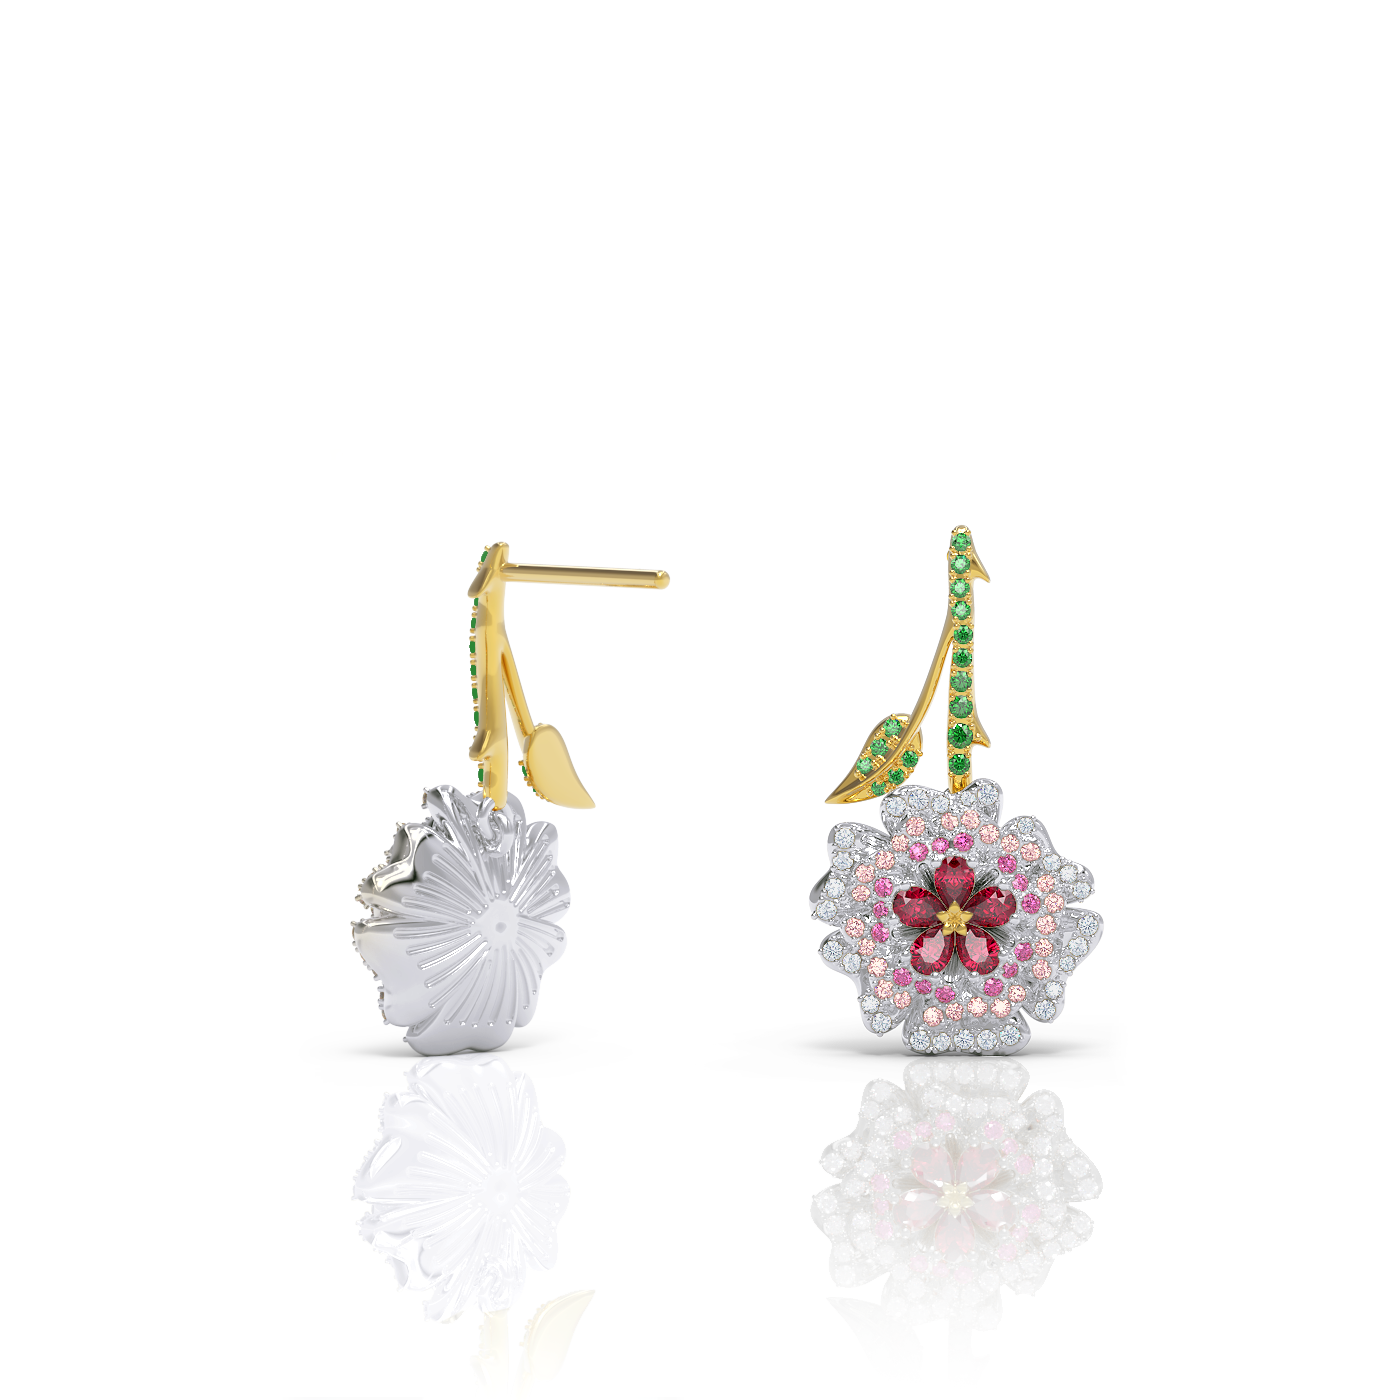 Rose bud ruby sapphire diamond drop earrings by Alice Herald